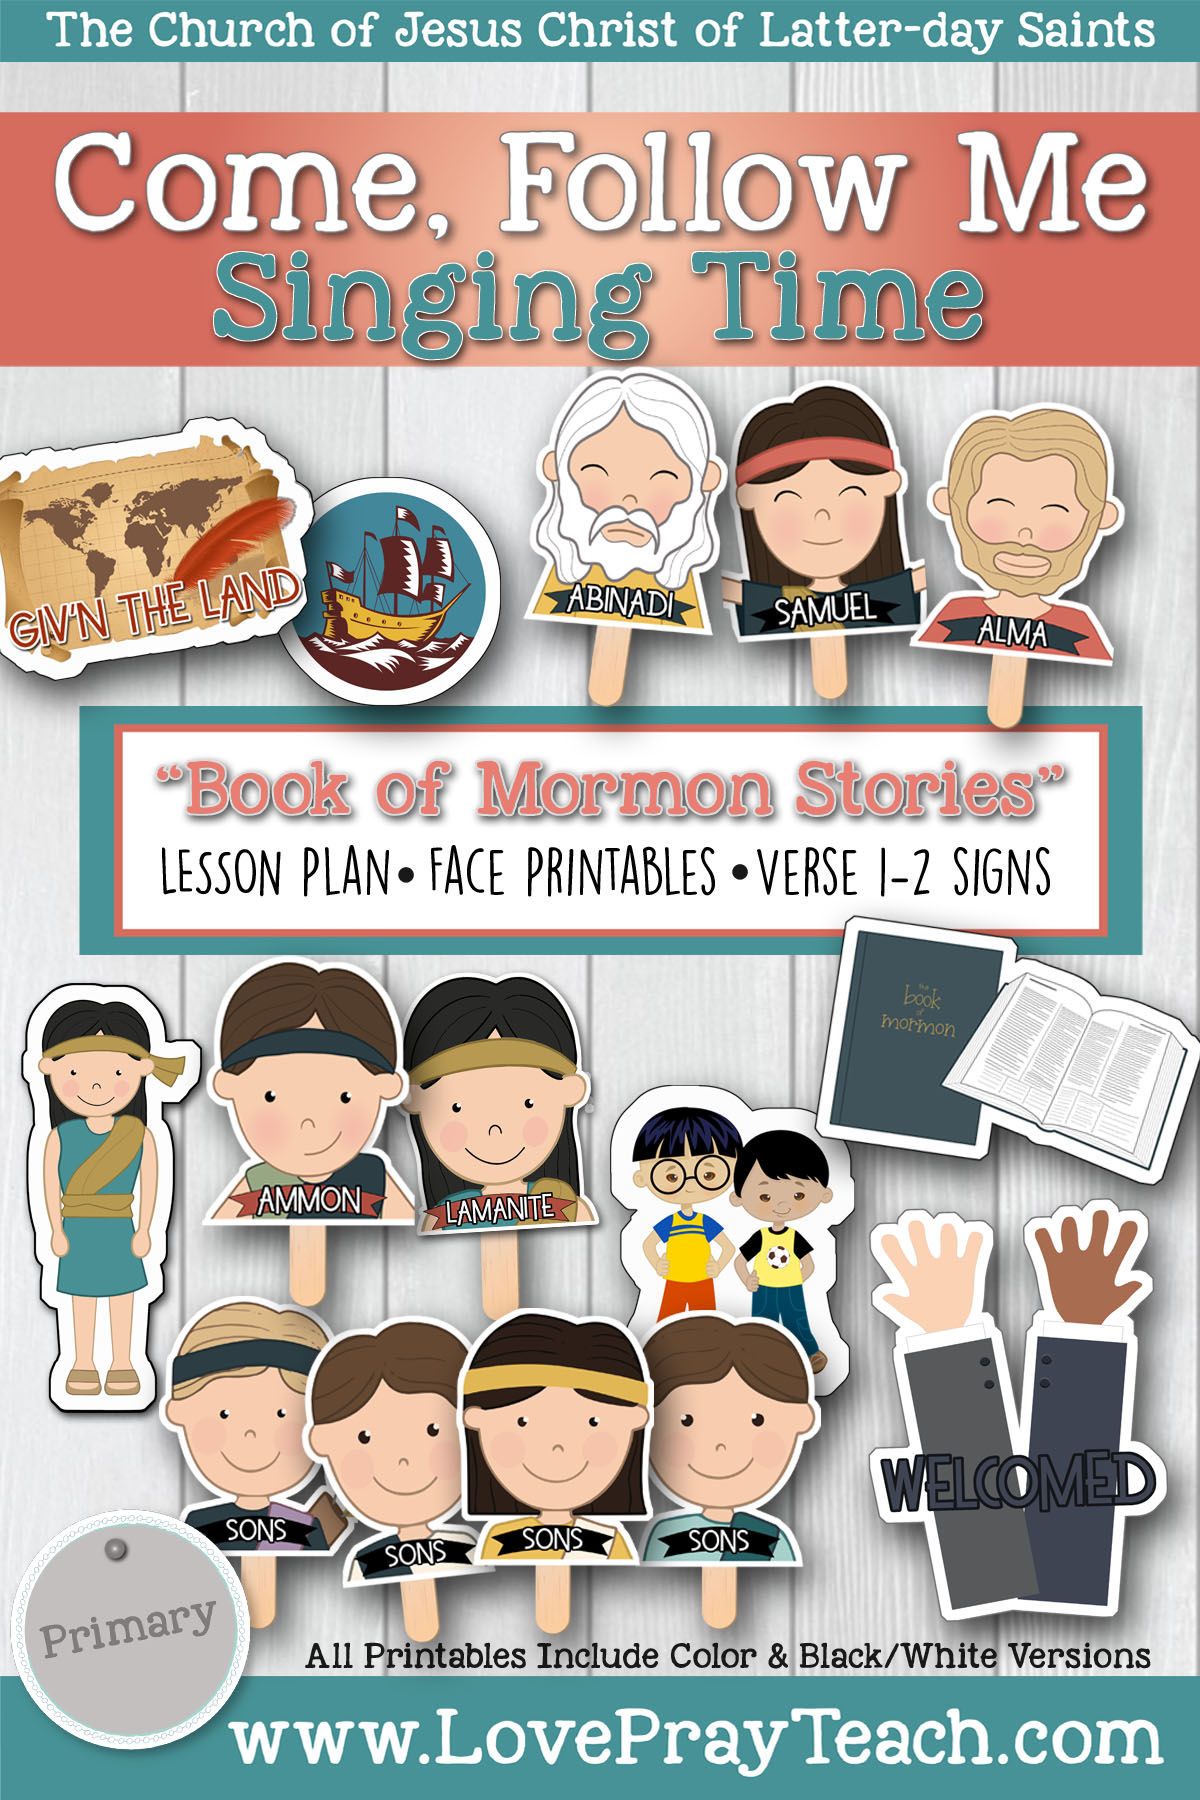 """Book of Mormon Stories"" Lesson Helps and Activity ideas for Latter-day Saint Primaries! www.LovePrayTeach.com"